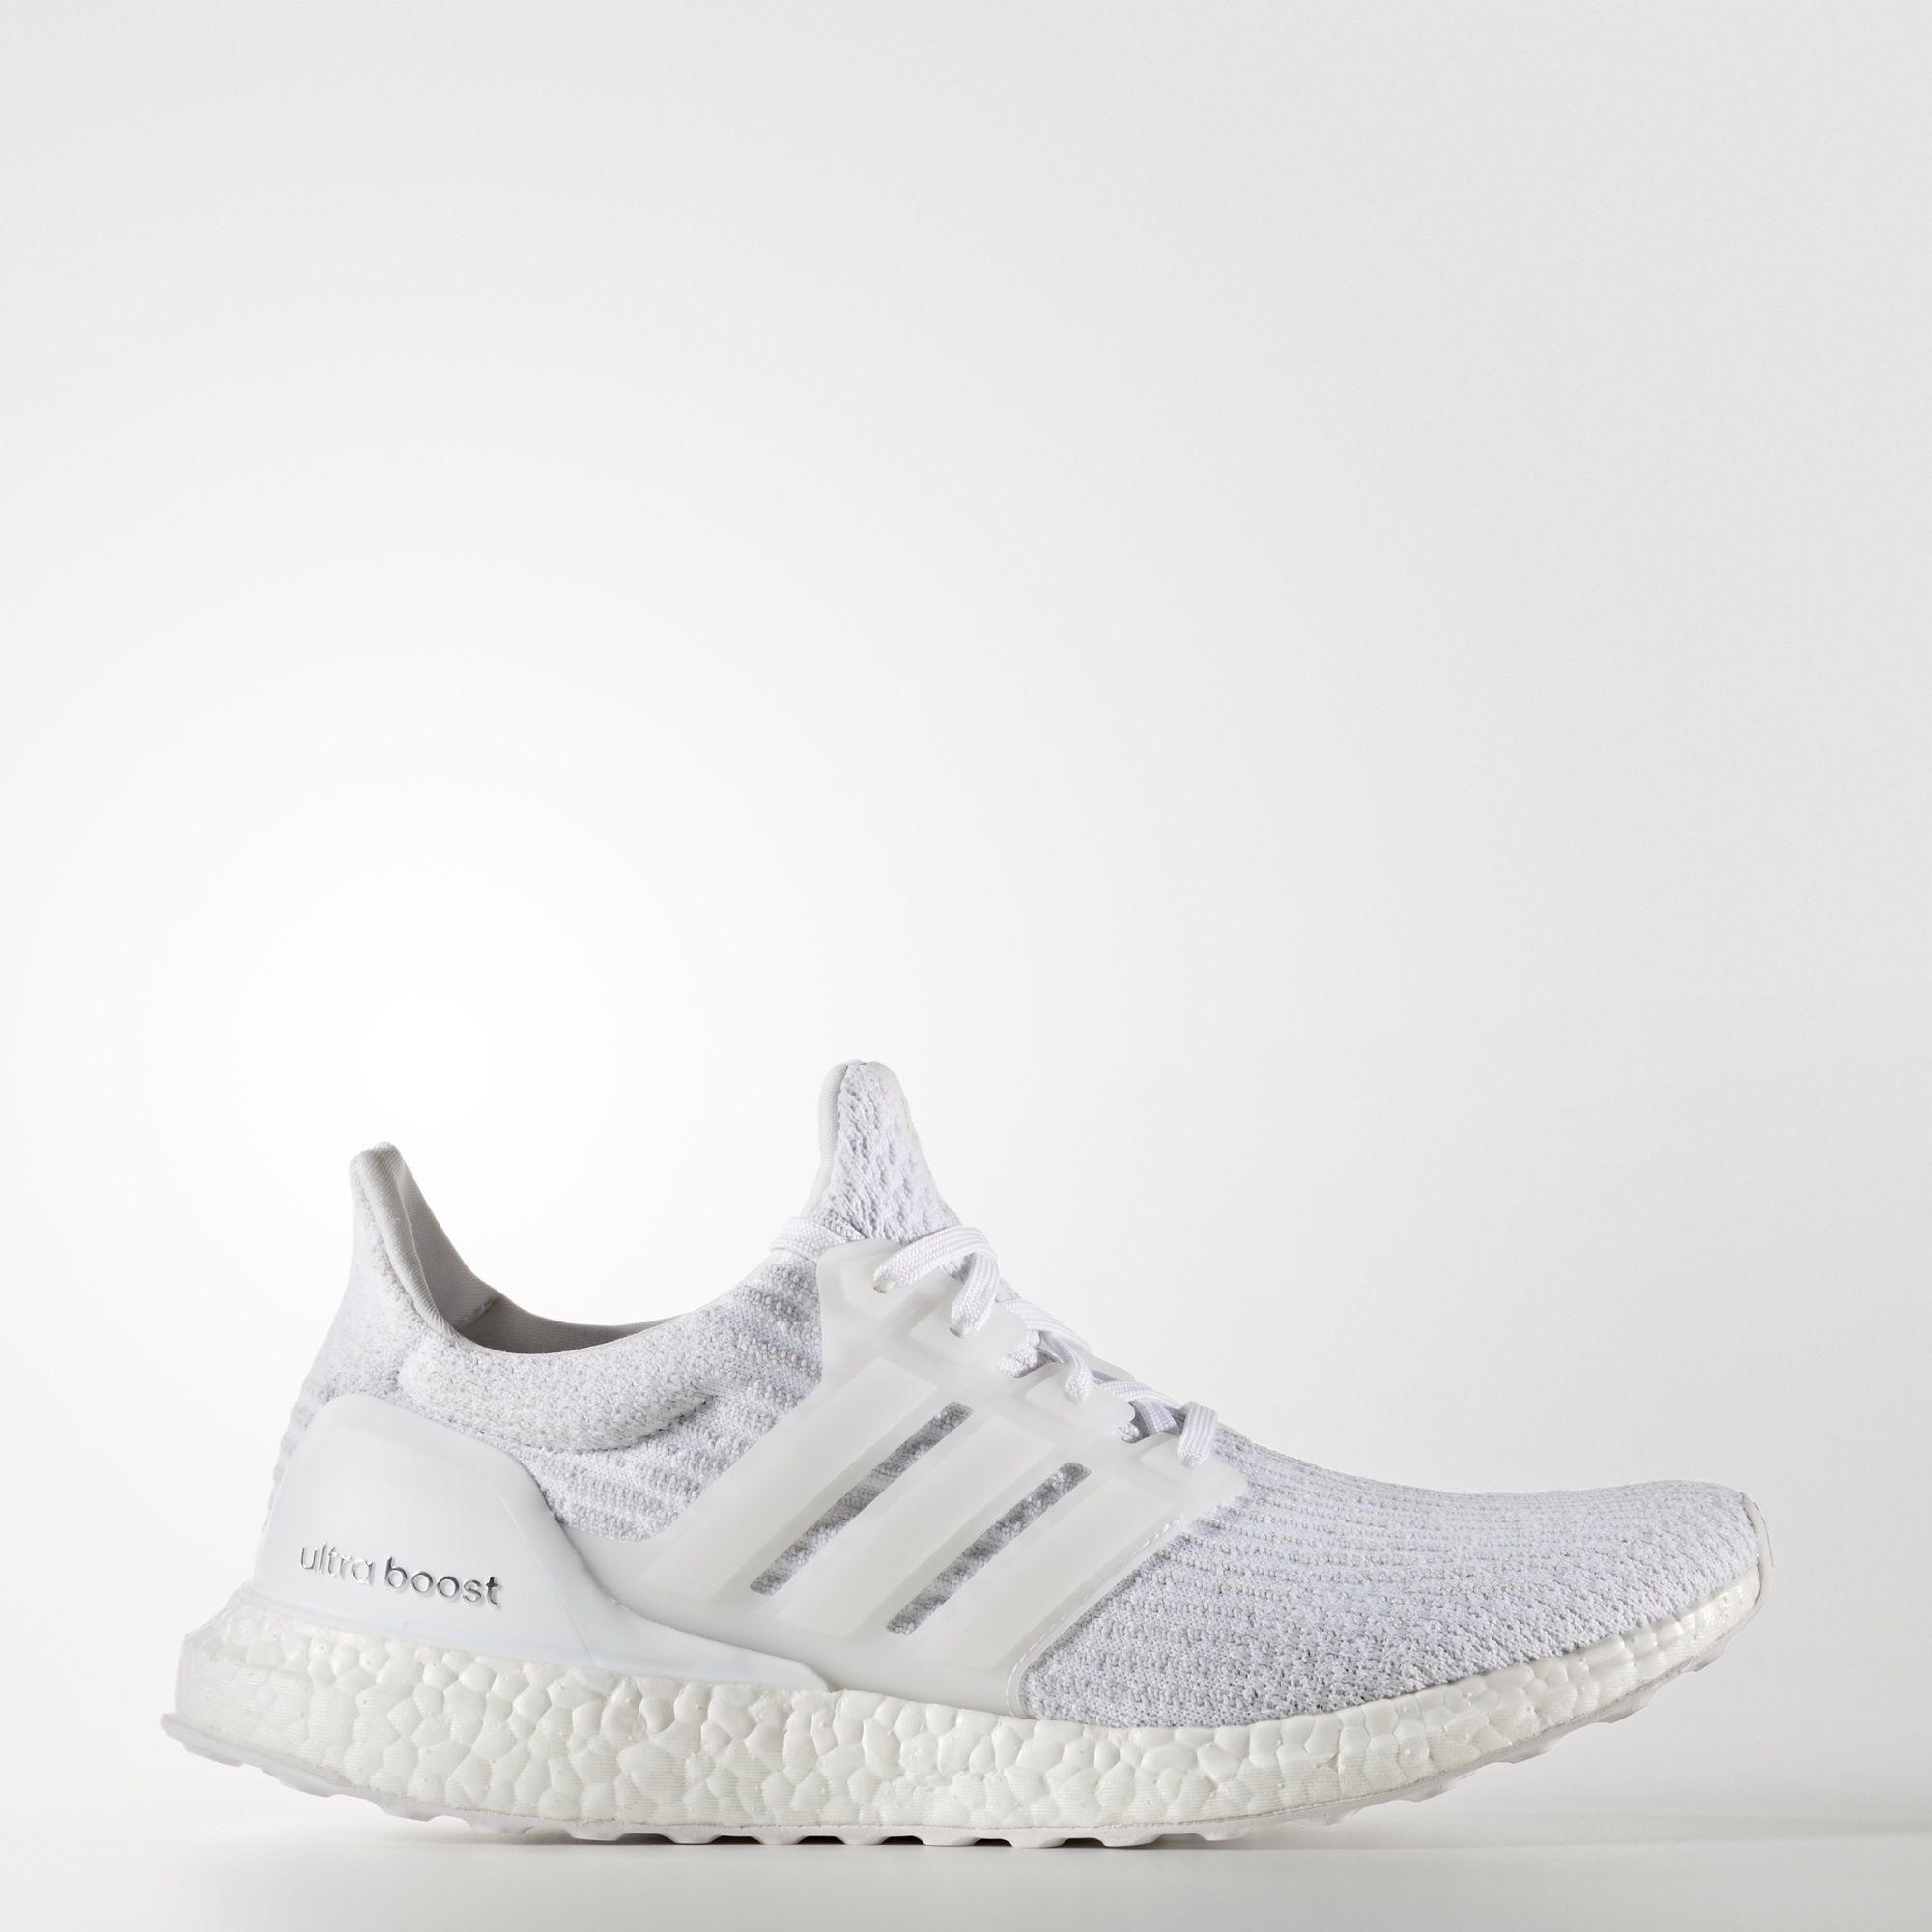 reputable site 8b843 bc0d7 Adidas Mens Ultra Boost Running Shoes - Triple White